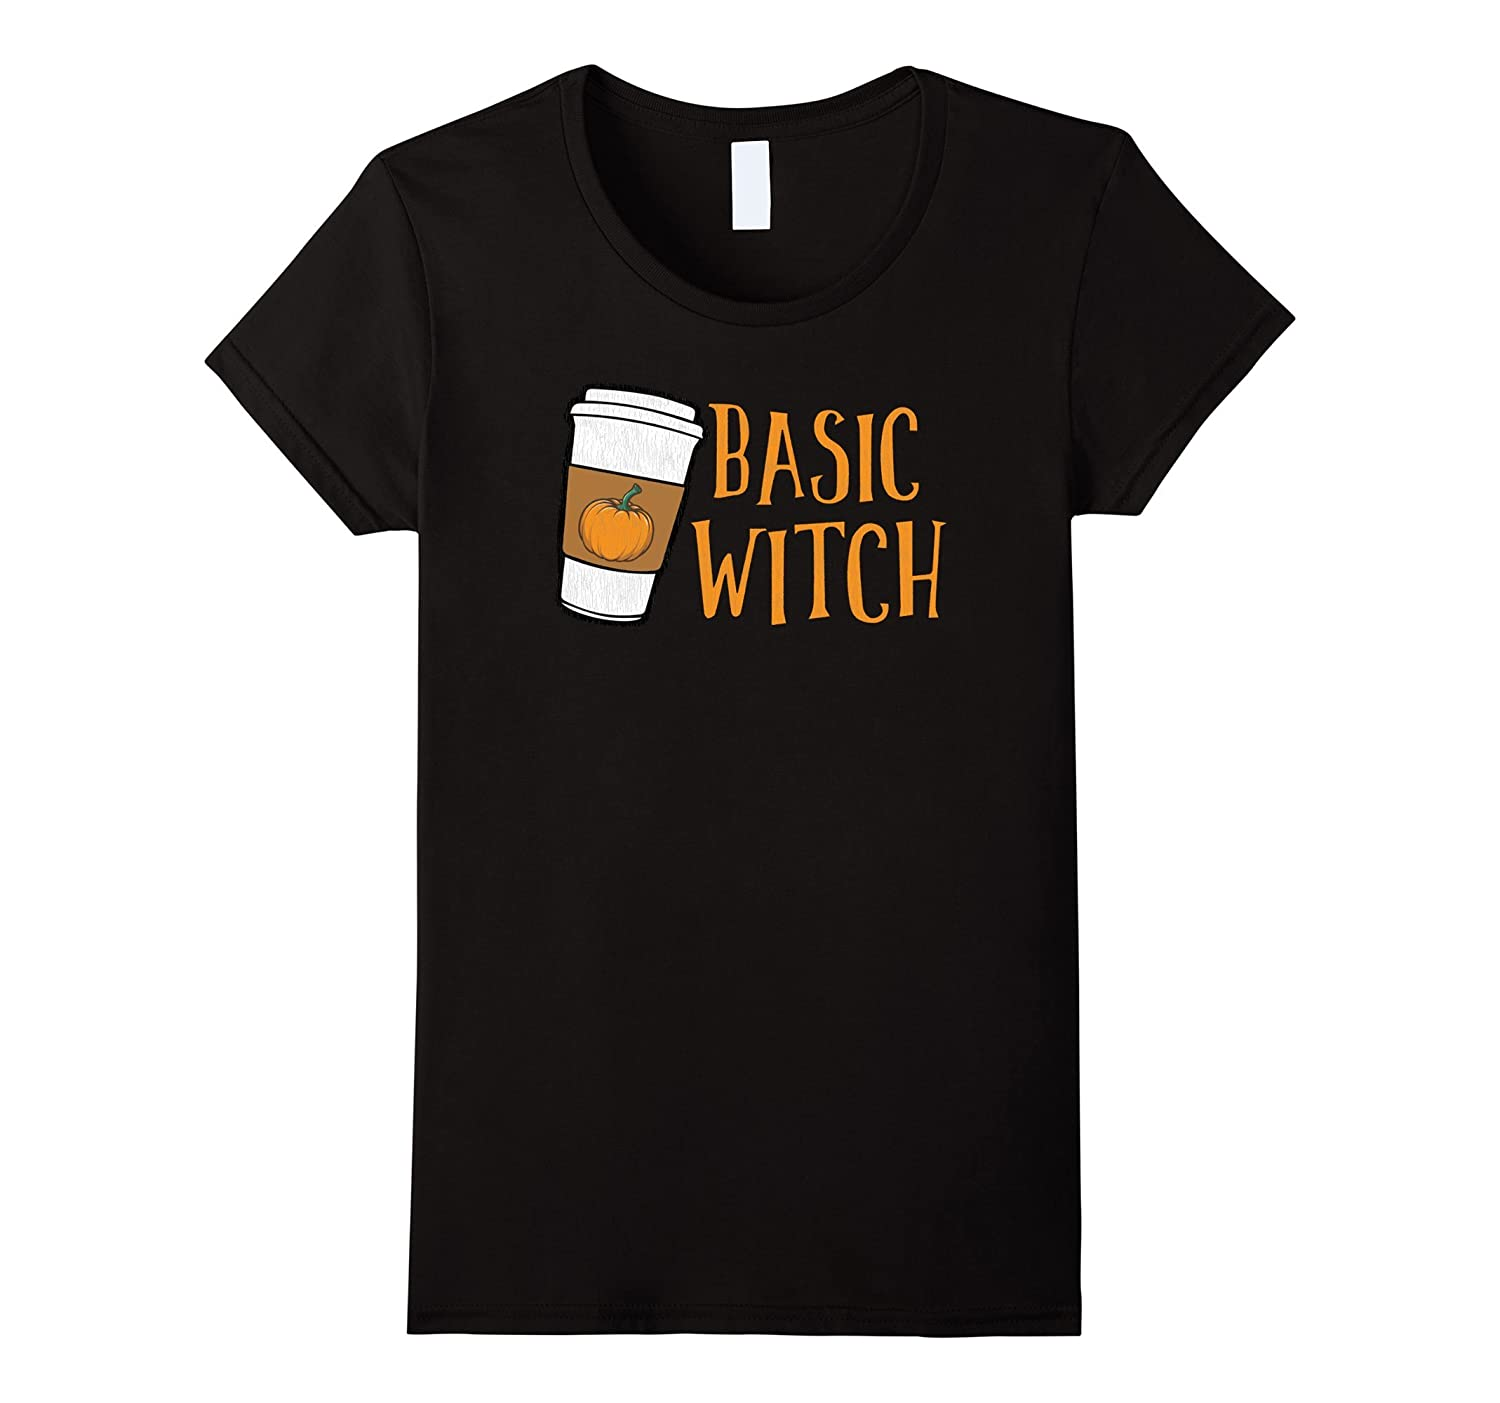 Womens Basic Witch Shirt Vintage Basic Witch T-Shirt for Women-CL